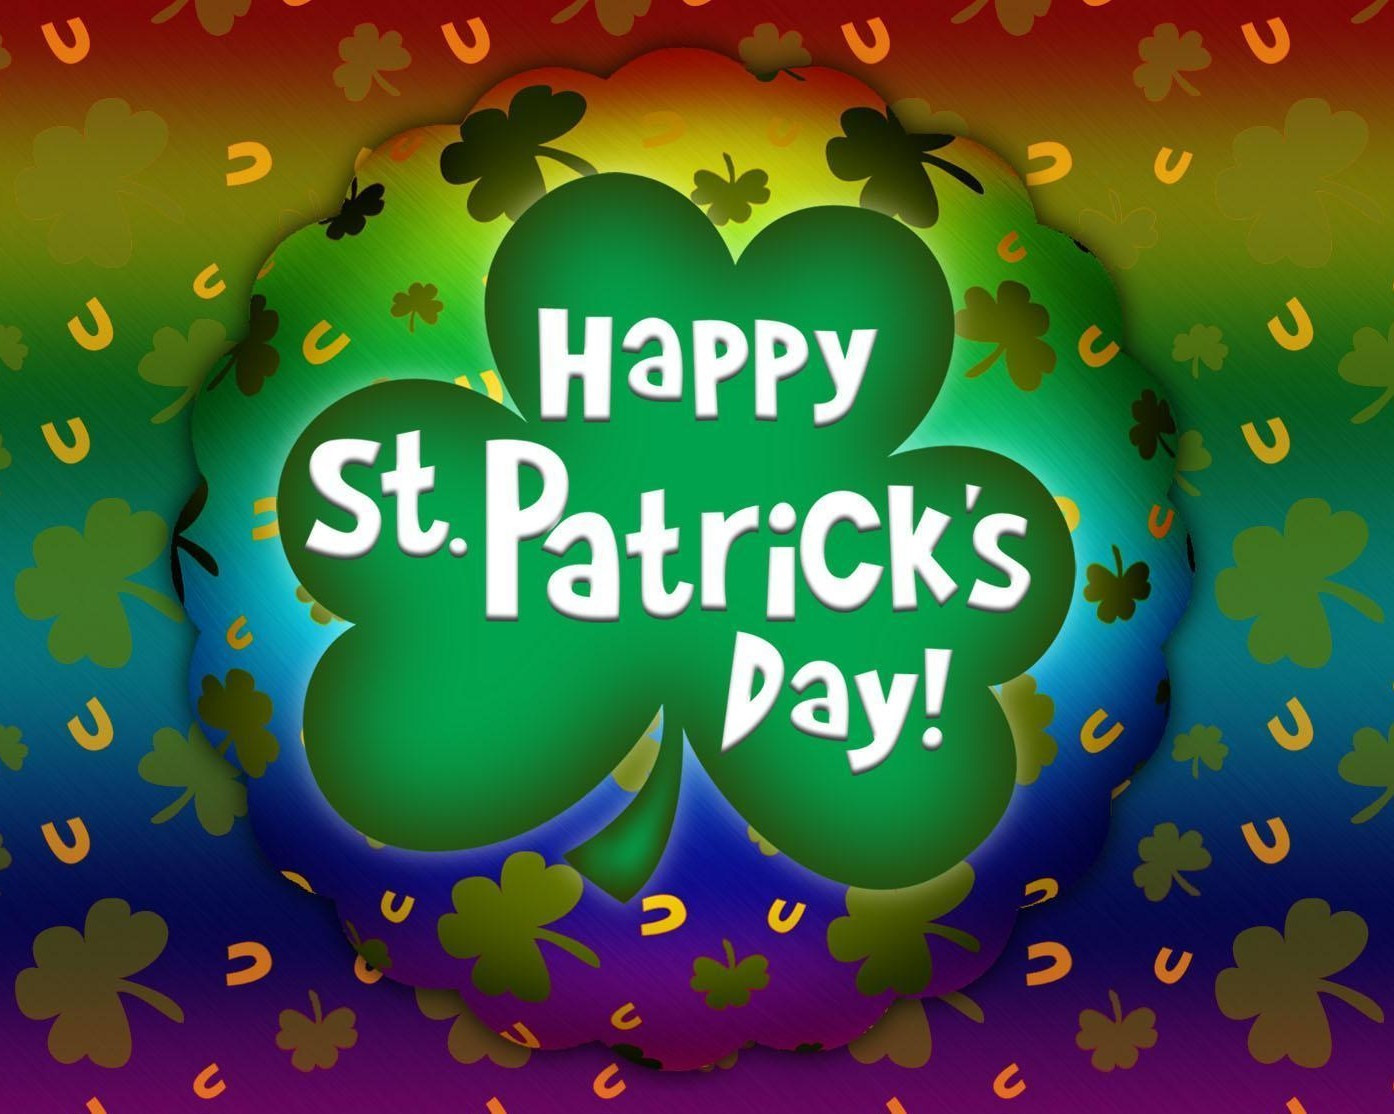 Saint Patrick's Day Quotes  Happy St Patrick s Day 2019 Quotes Wishes Messages Sayings